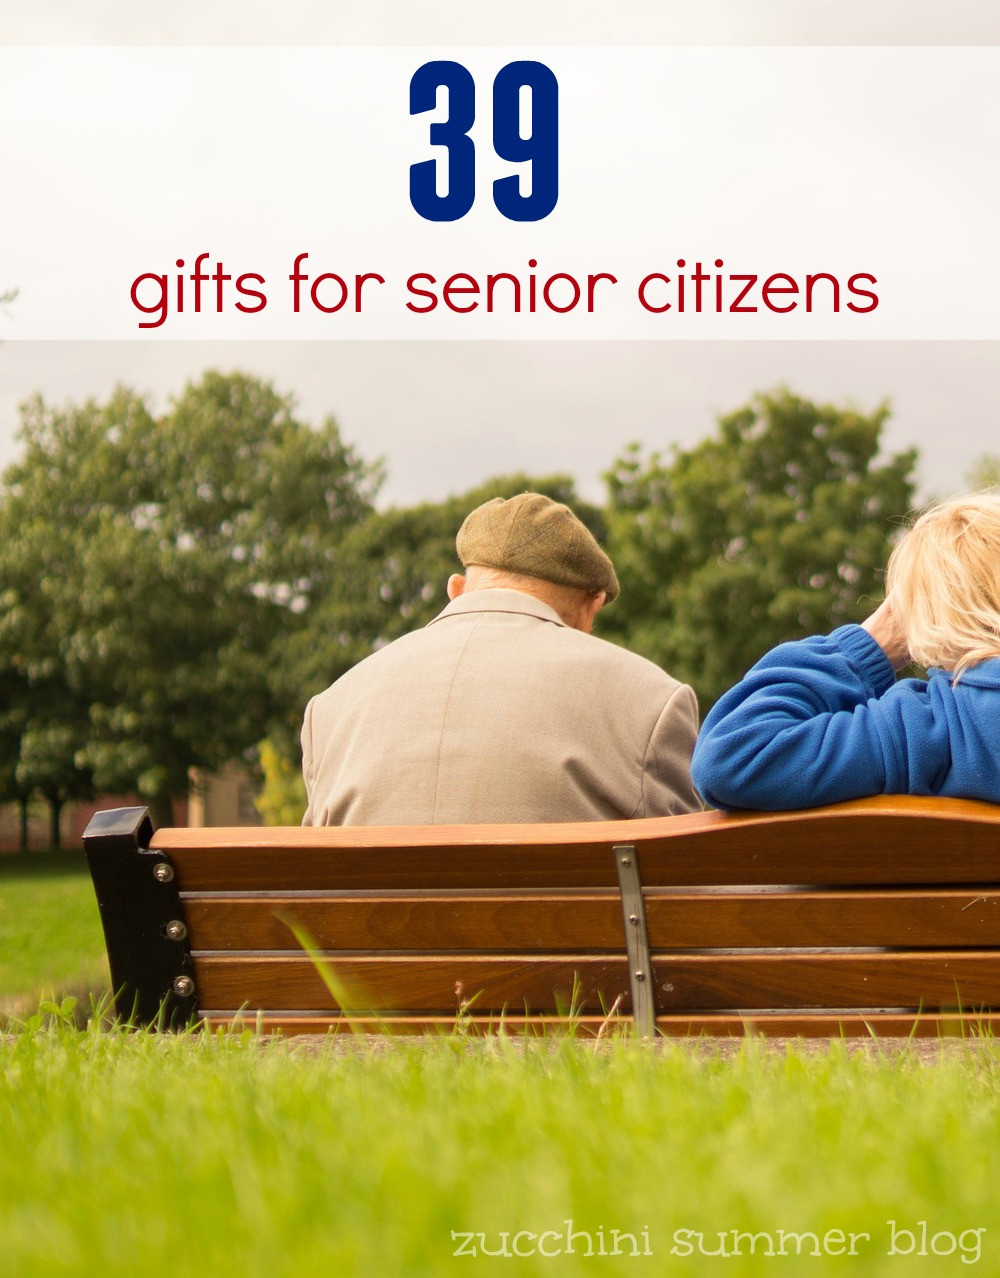 Best ideas about Gift Ideas For Elderly . Save or Pin Zucchini Summer Gifts for Senior Citizens Now.